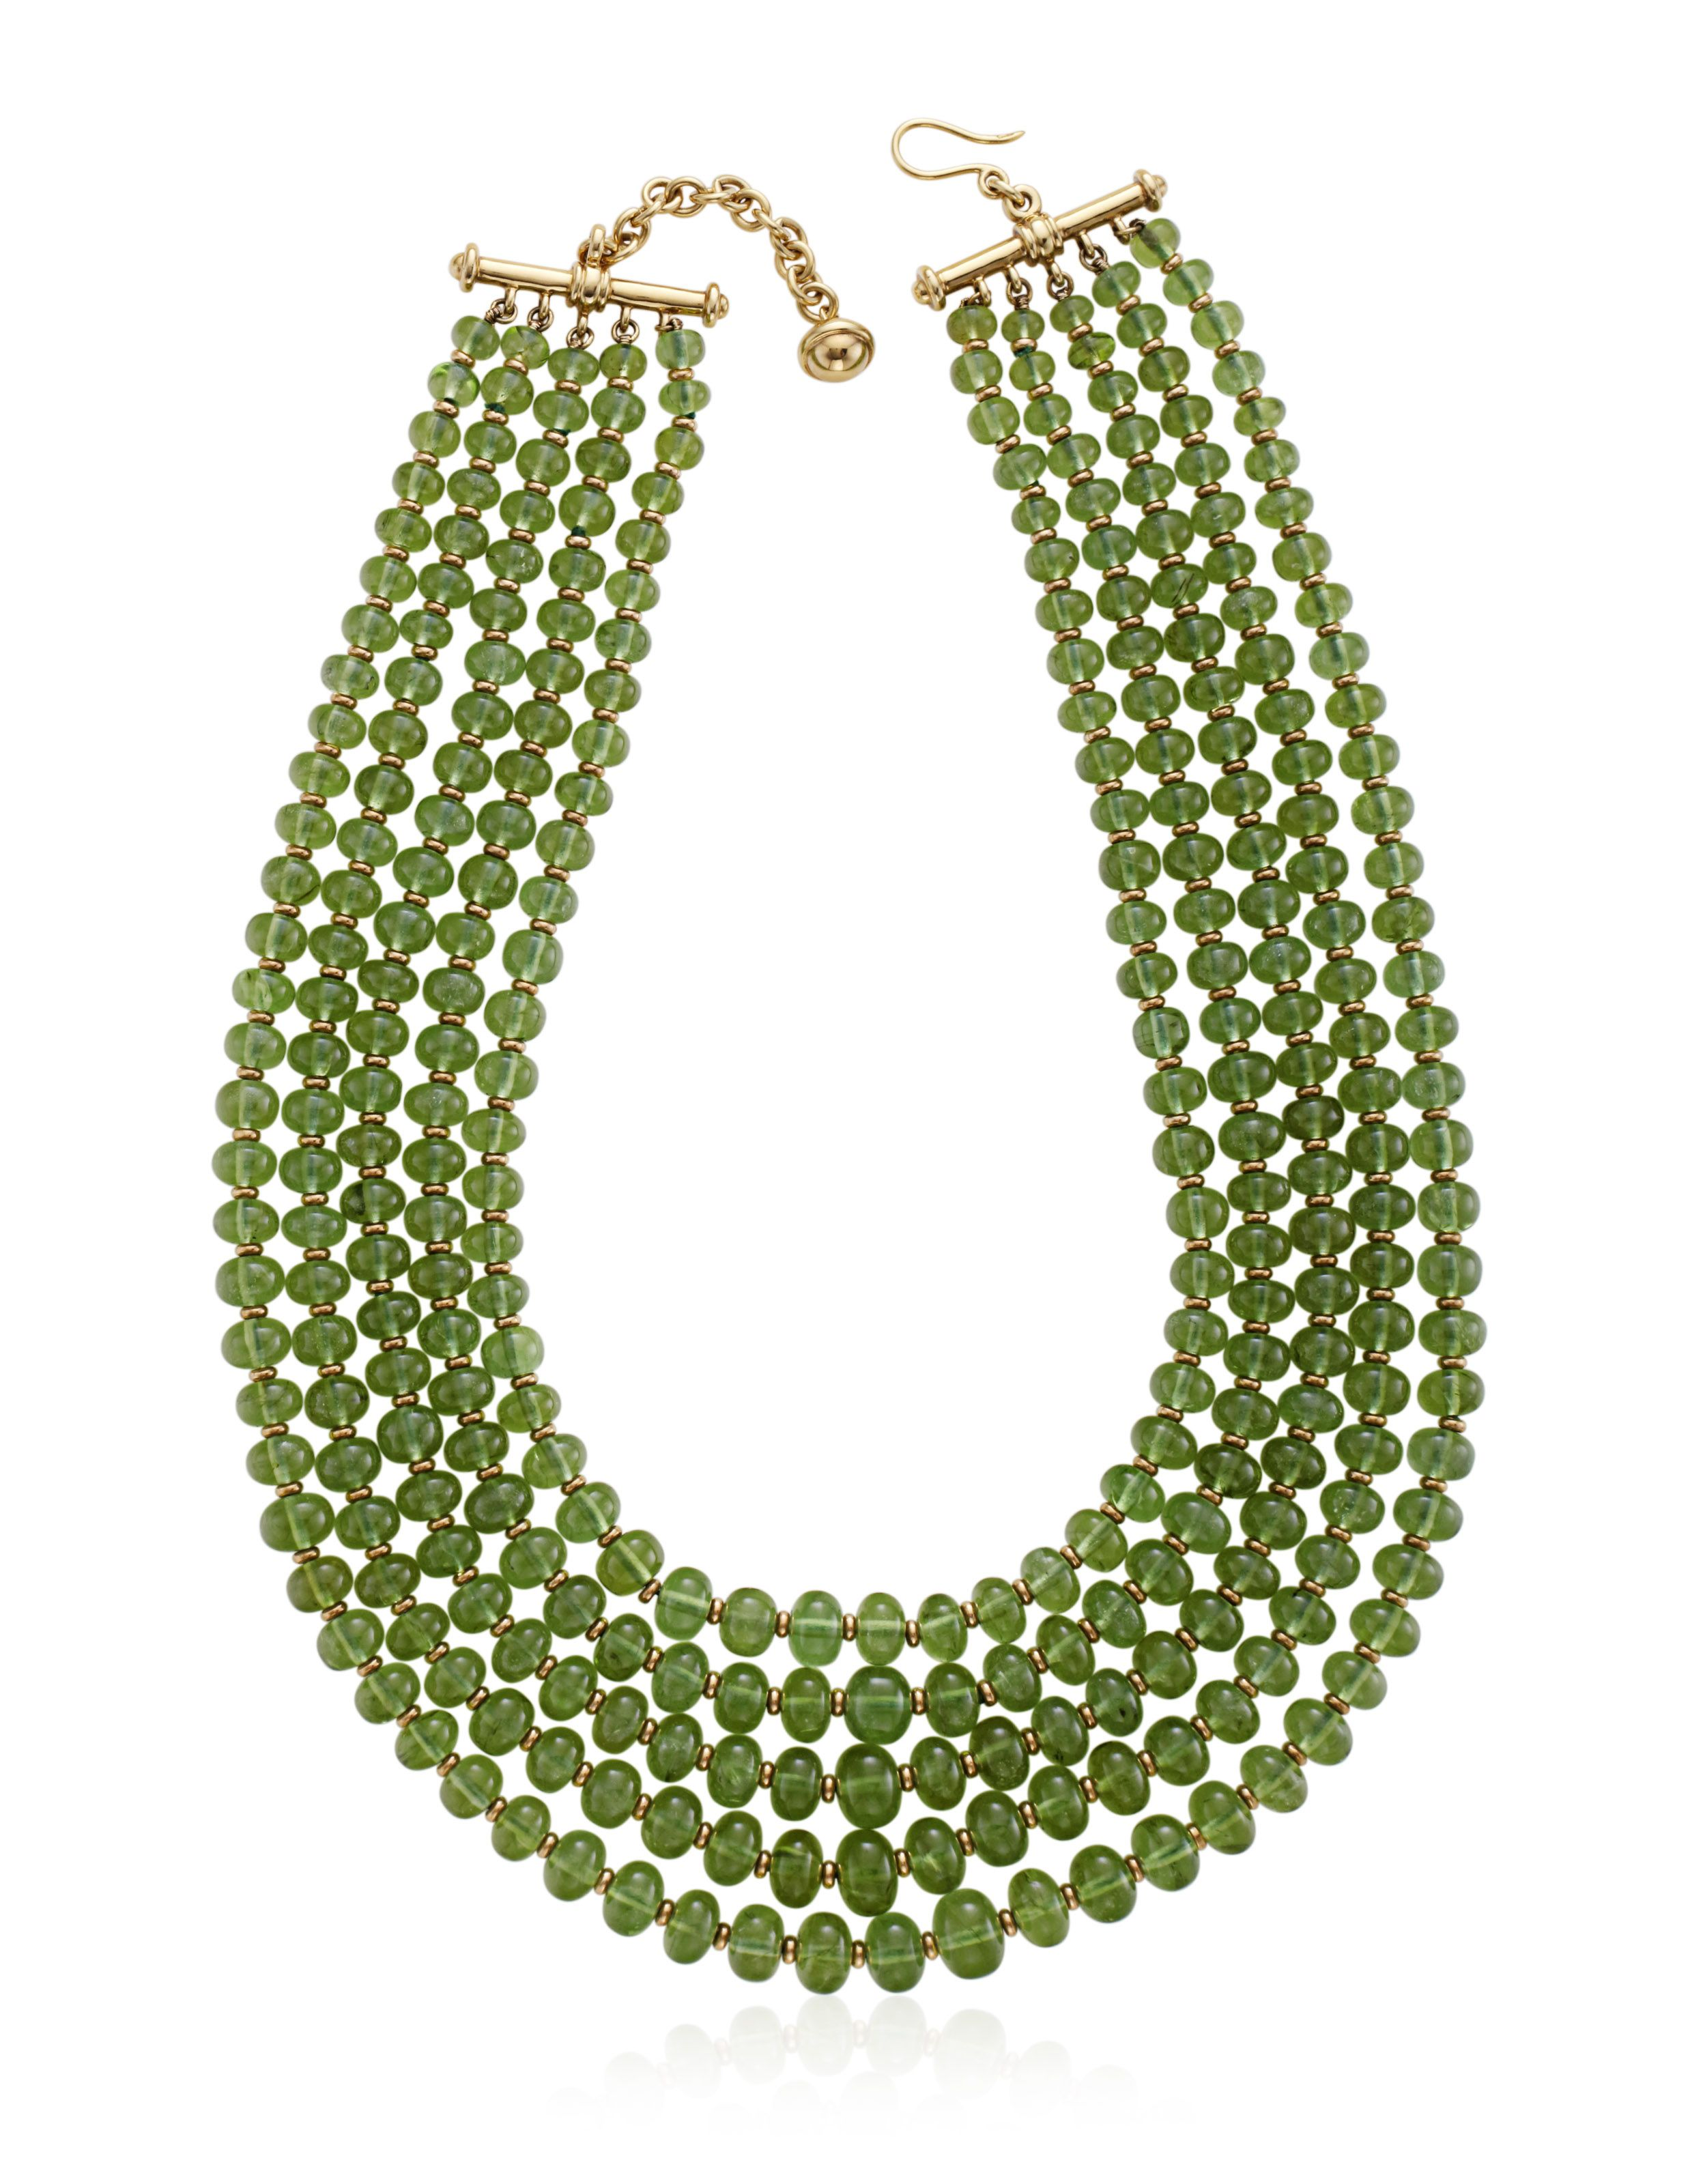 861e90b35 TIFFANY & CO. PALOMA PICASSO PERIDOT BEAD NECKLACEDesigned as five strands  of peridot beads spaced by gold rondelles with a gold claspMetal: 18K  yellow ...